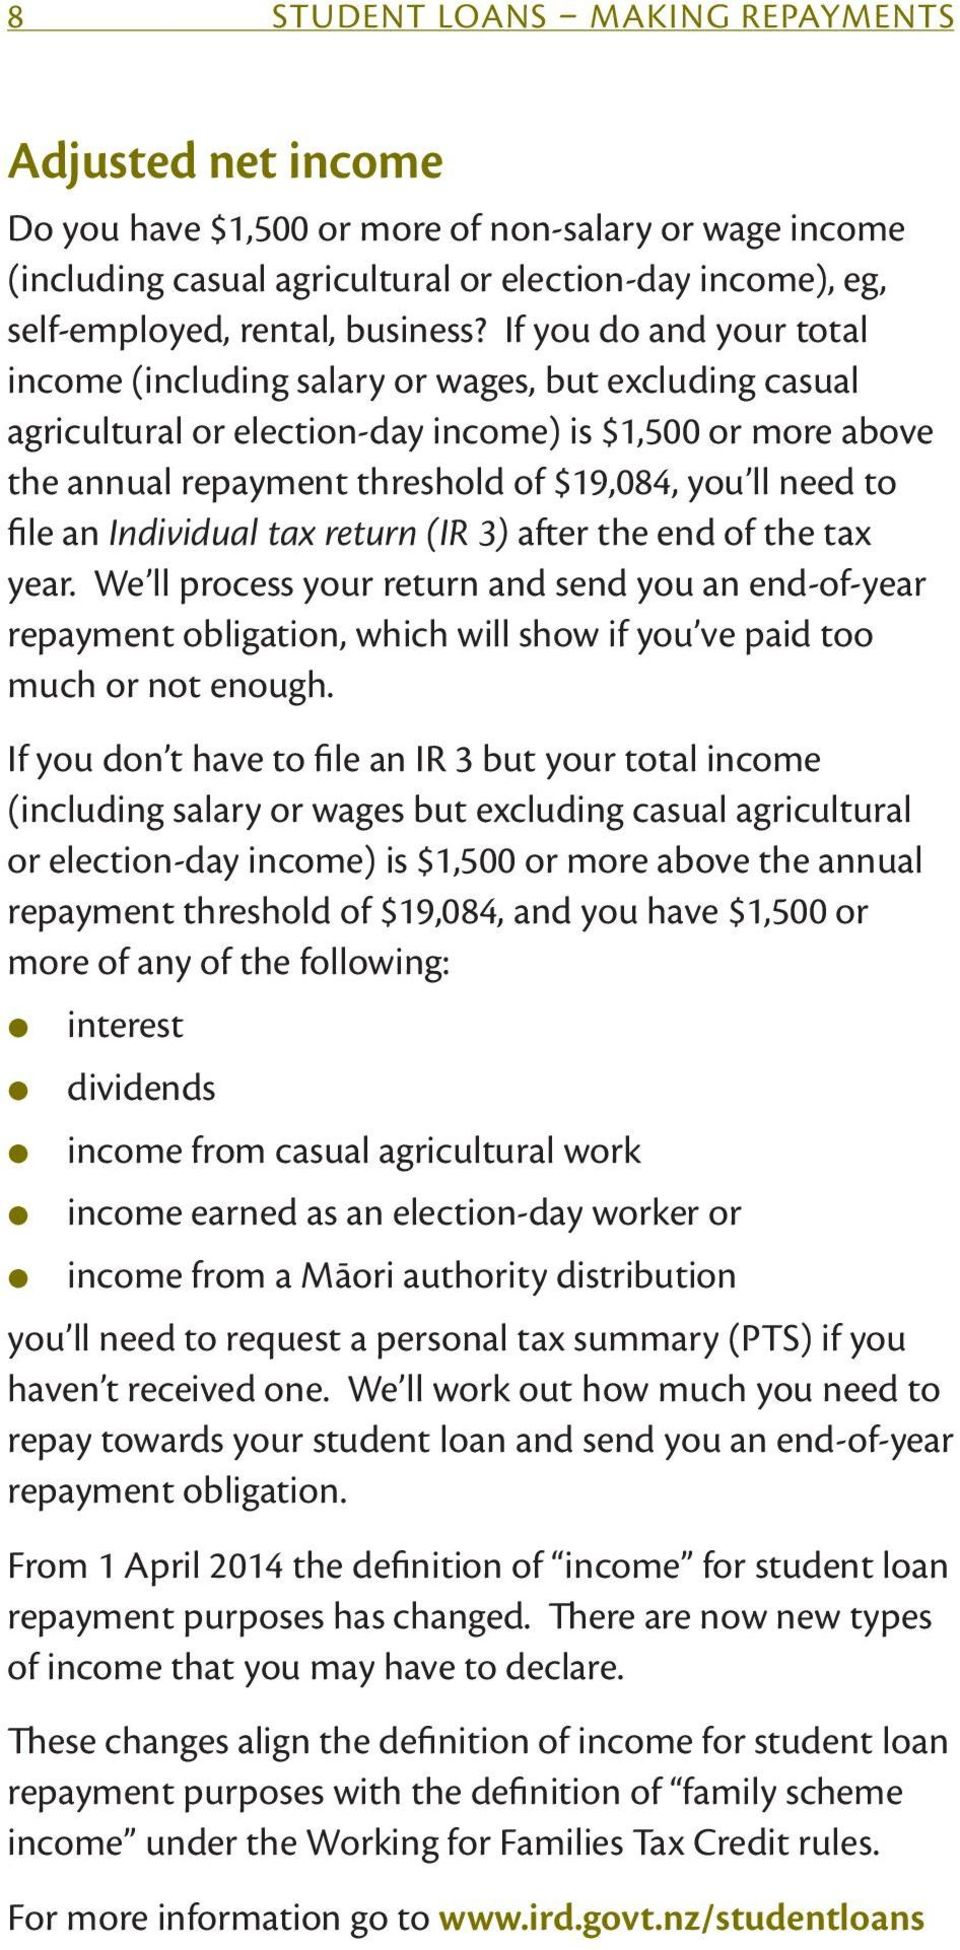 If you do and your total income (including salary or wages, but excluding casual agricultural or election-day income) is $1,500 or more above the annual repayment threshold of $19,084, you ll need to